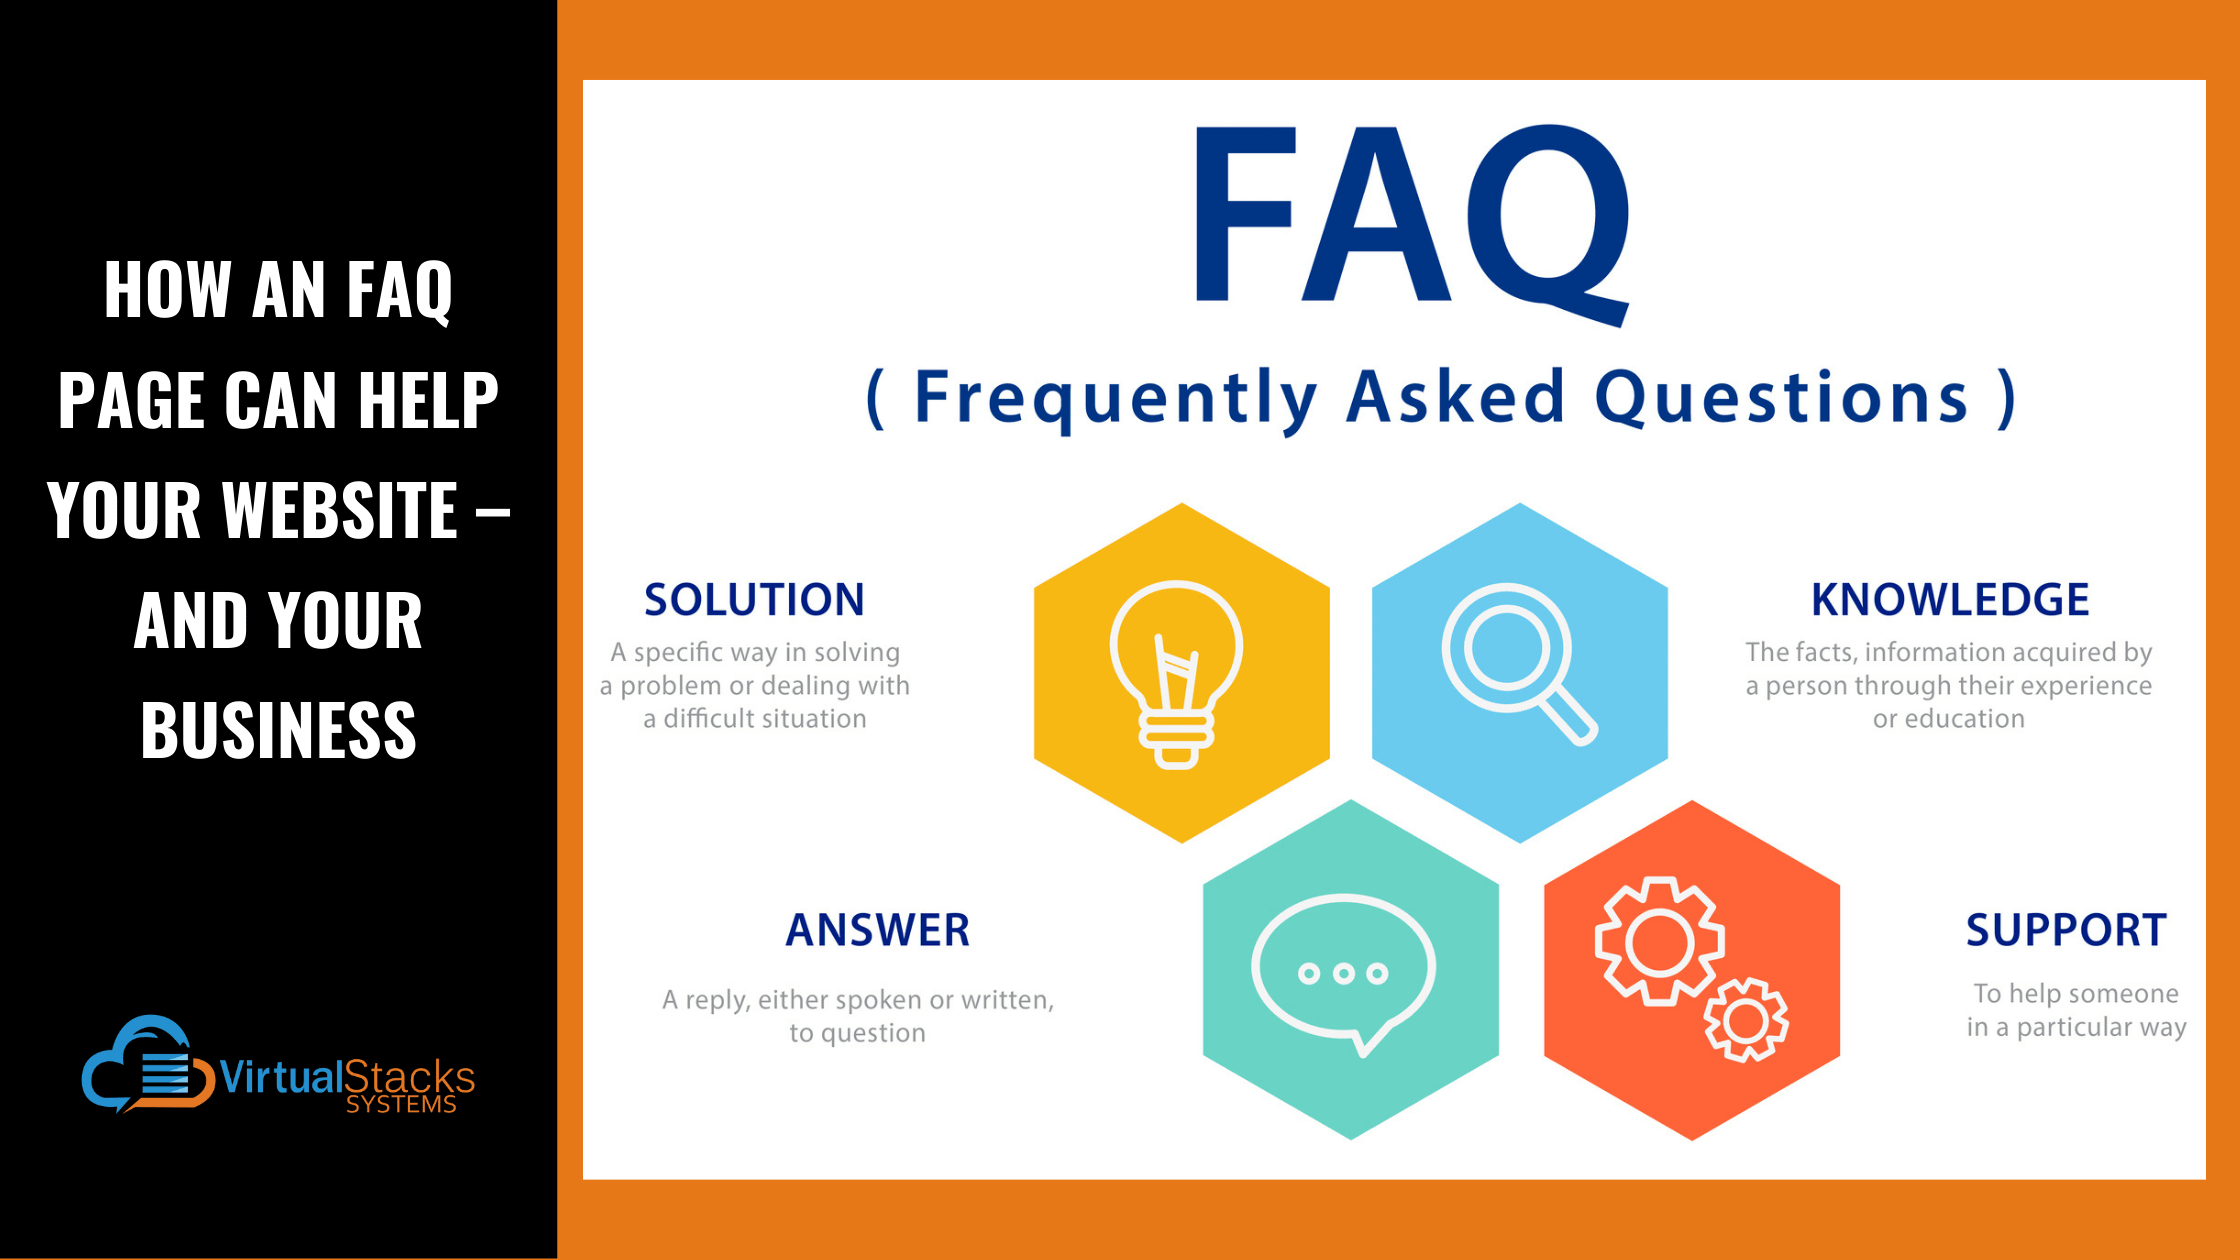 How an FAQ Page Can Help Your Website – and Your Business